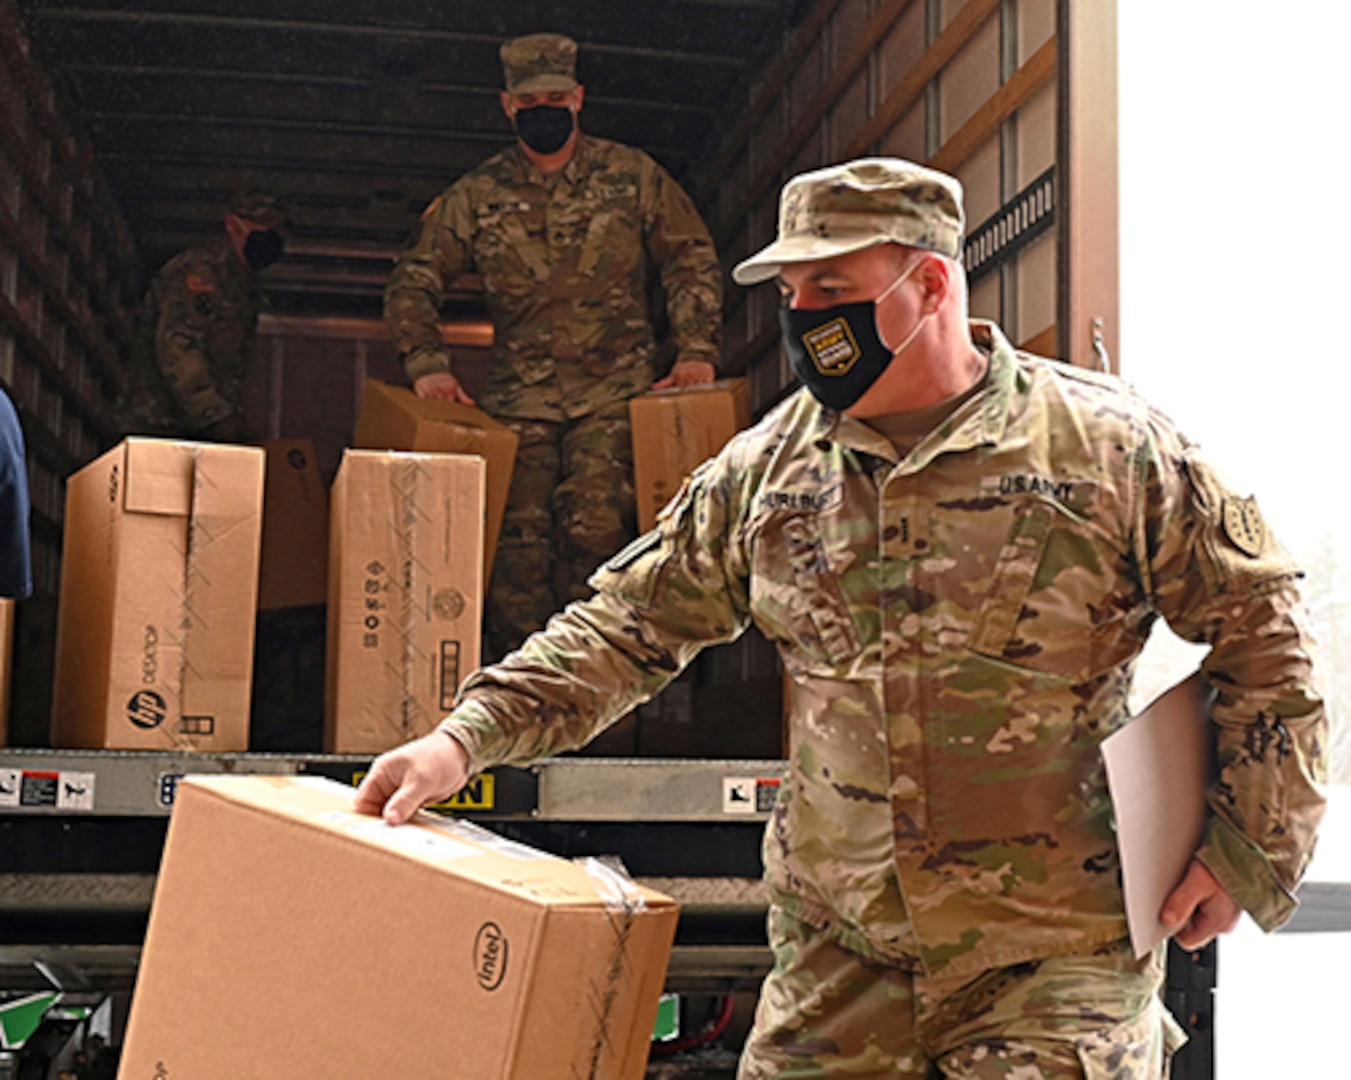 Soldiers in uniforms unload boxes from a truck with computers in them.